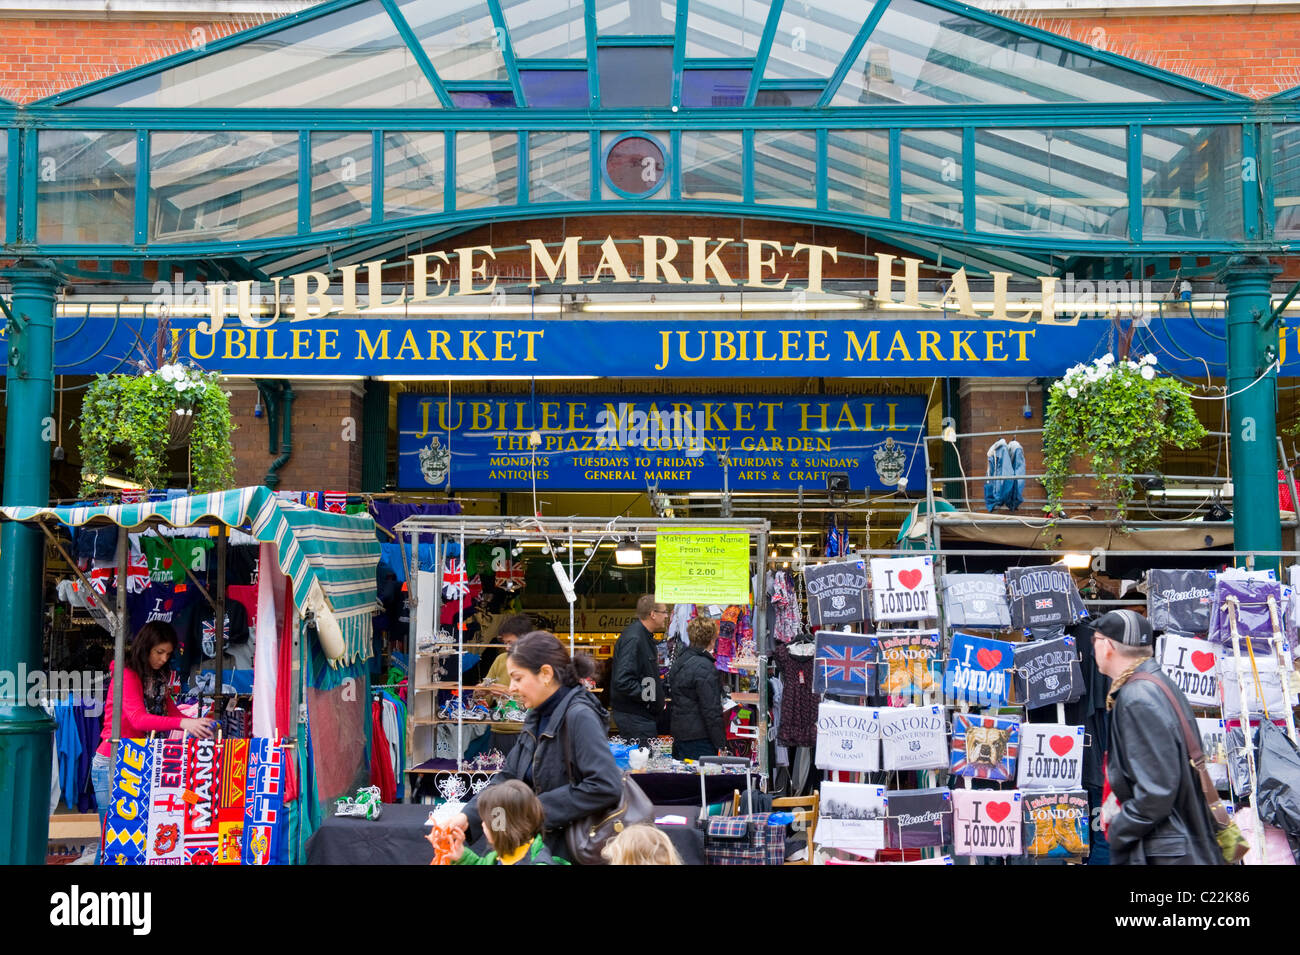 Covent Garden , Jubilee Market Hall with tourist shops or stalls ...